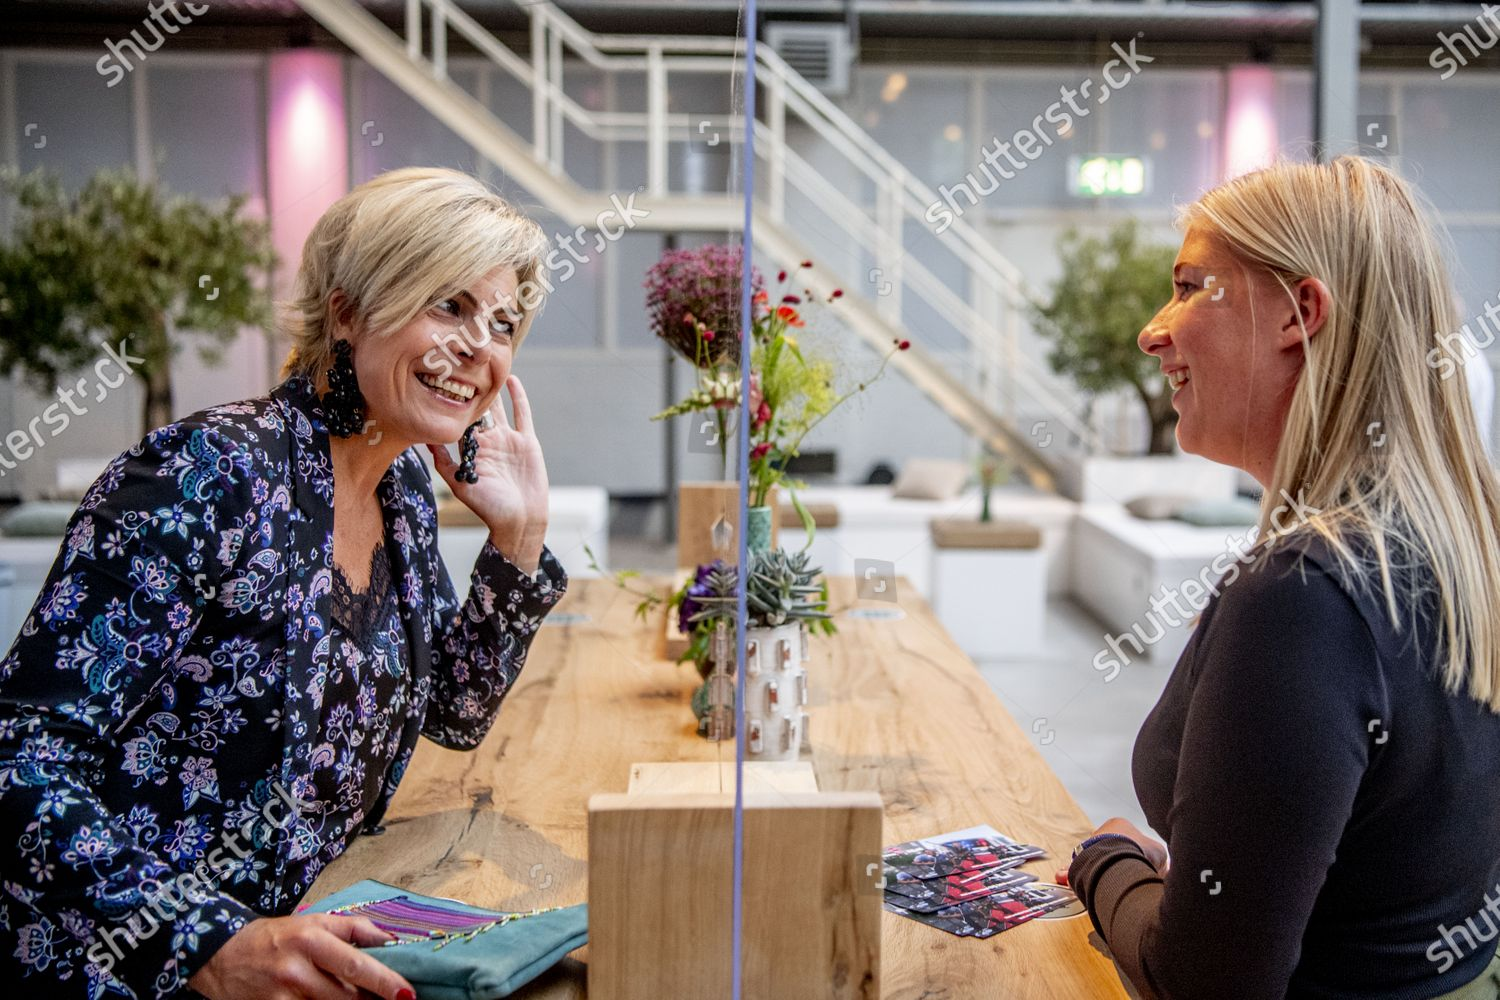 princess-laurentien-attends-a-coronavirus-proof-live-conference-fokker-terminal-the-hague-the-netherlands-shutterstock-editorial-10697685y.jpg